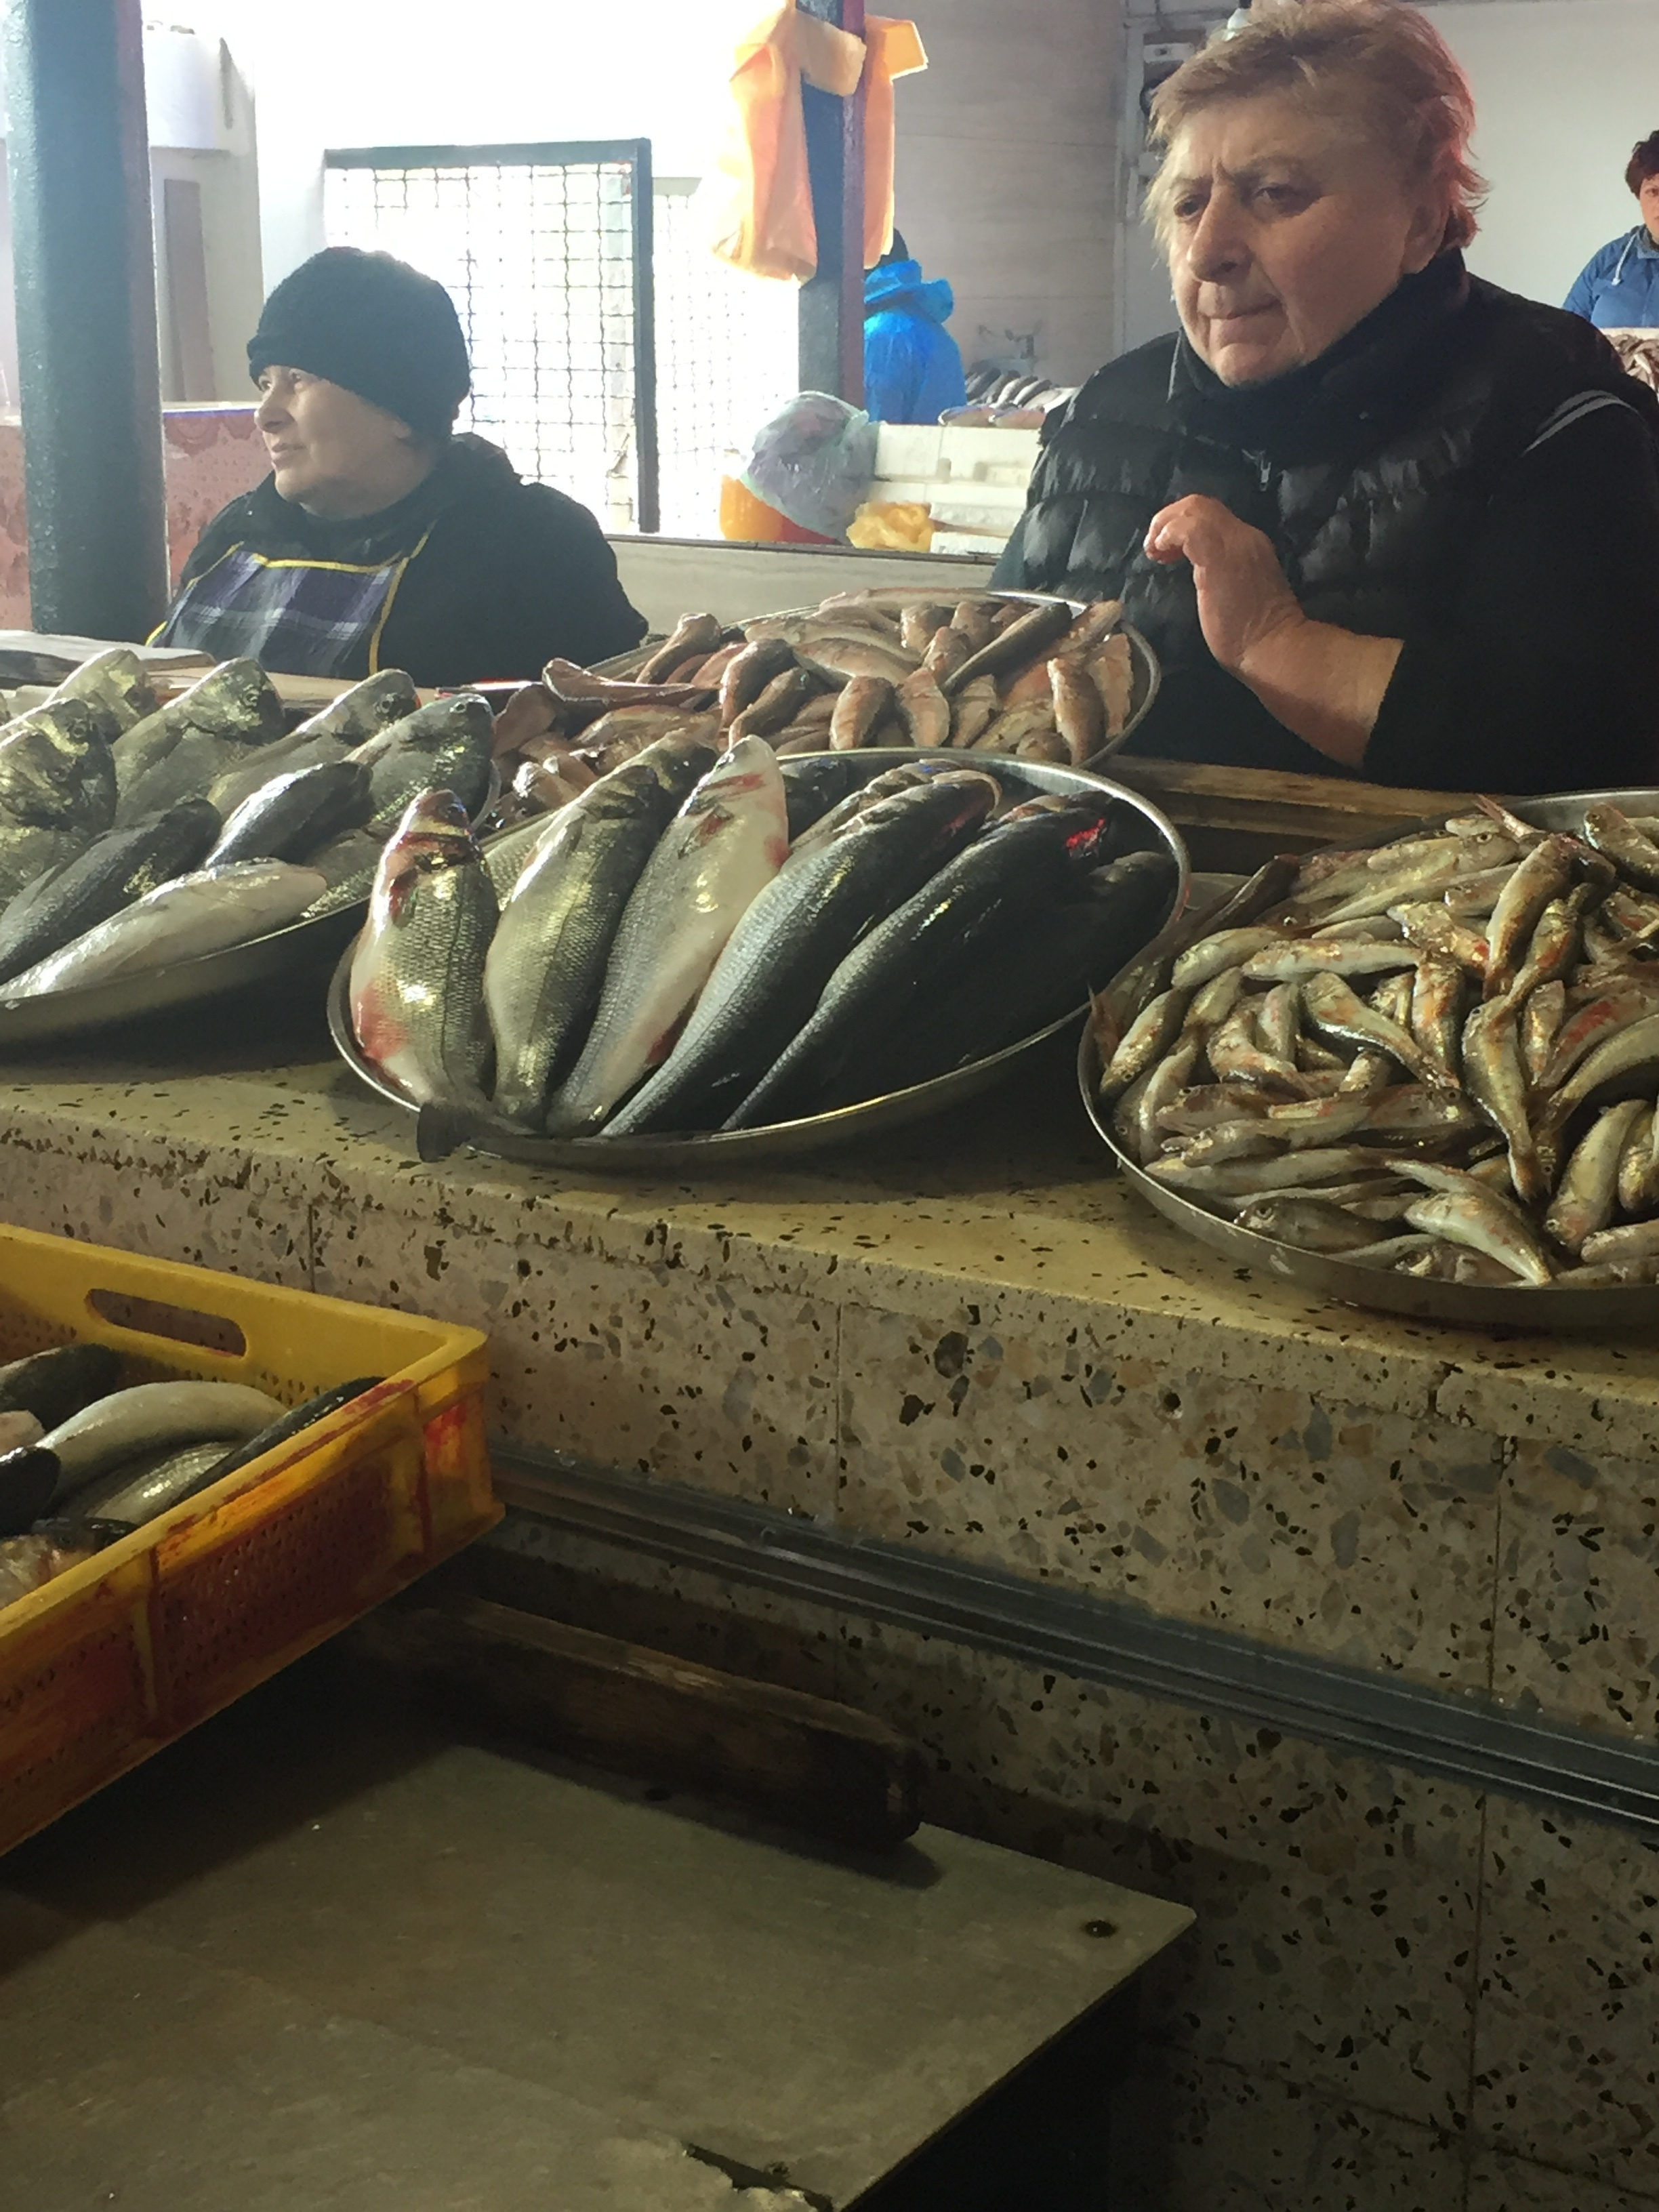 Selecting our fish from the market